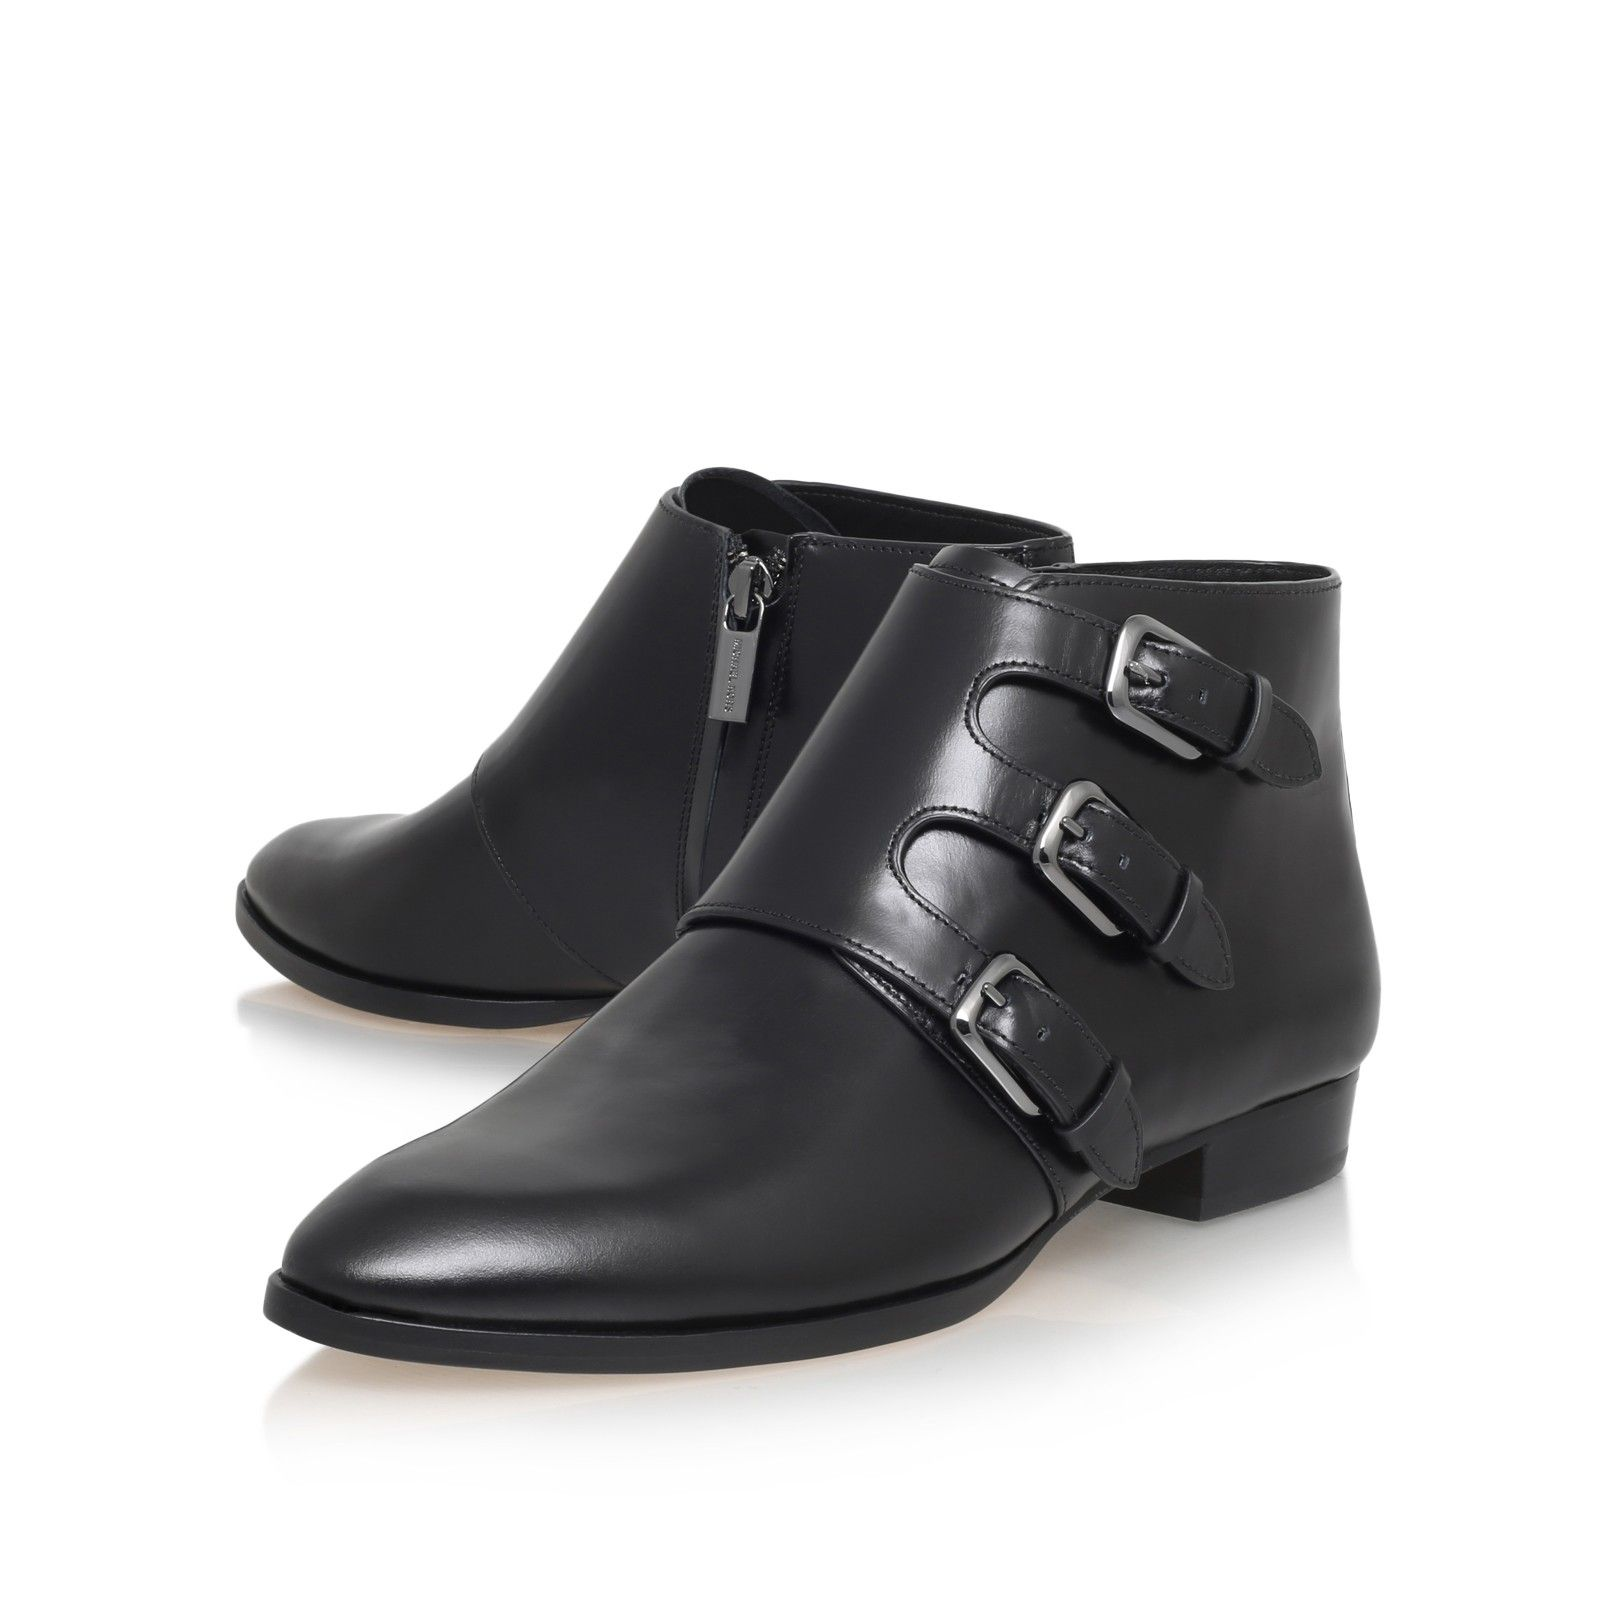 prudence flat bootie black flat ankle boots from Michael Michael Kors